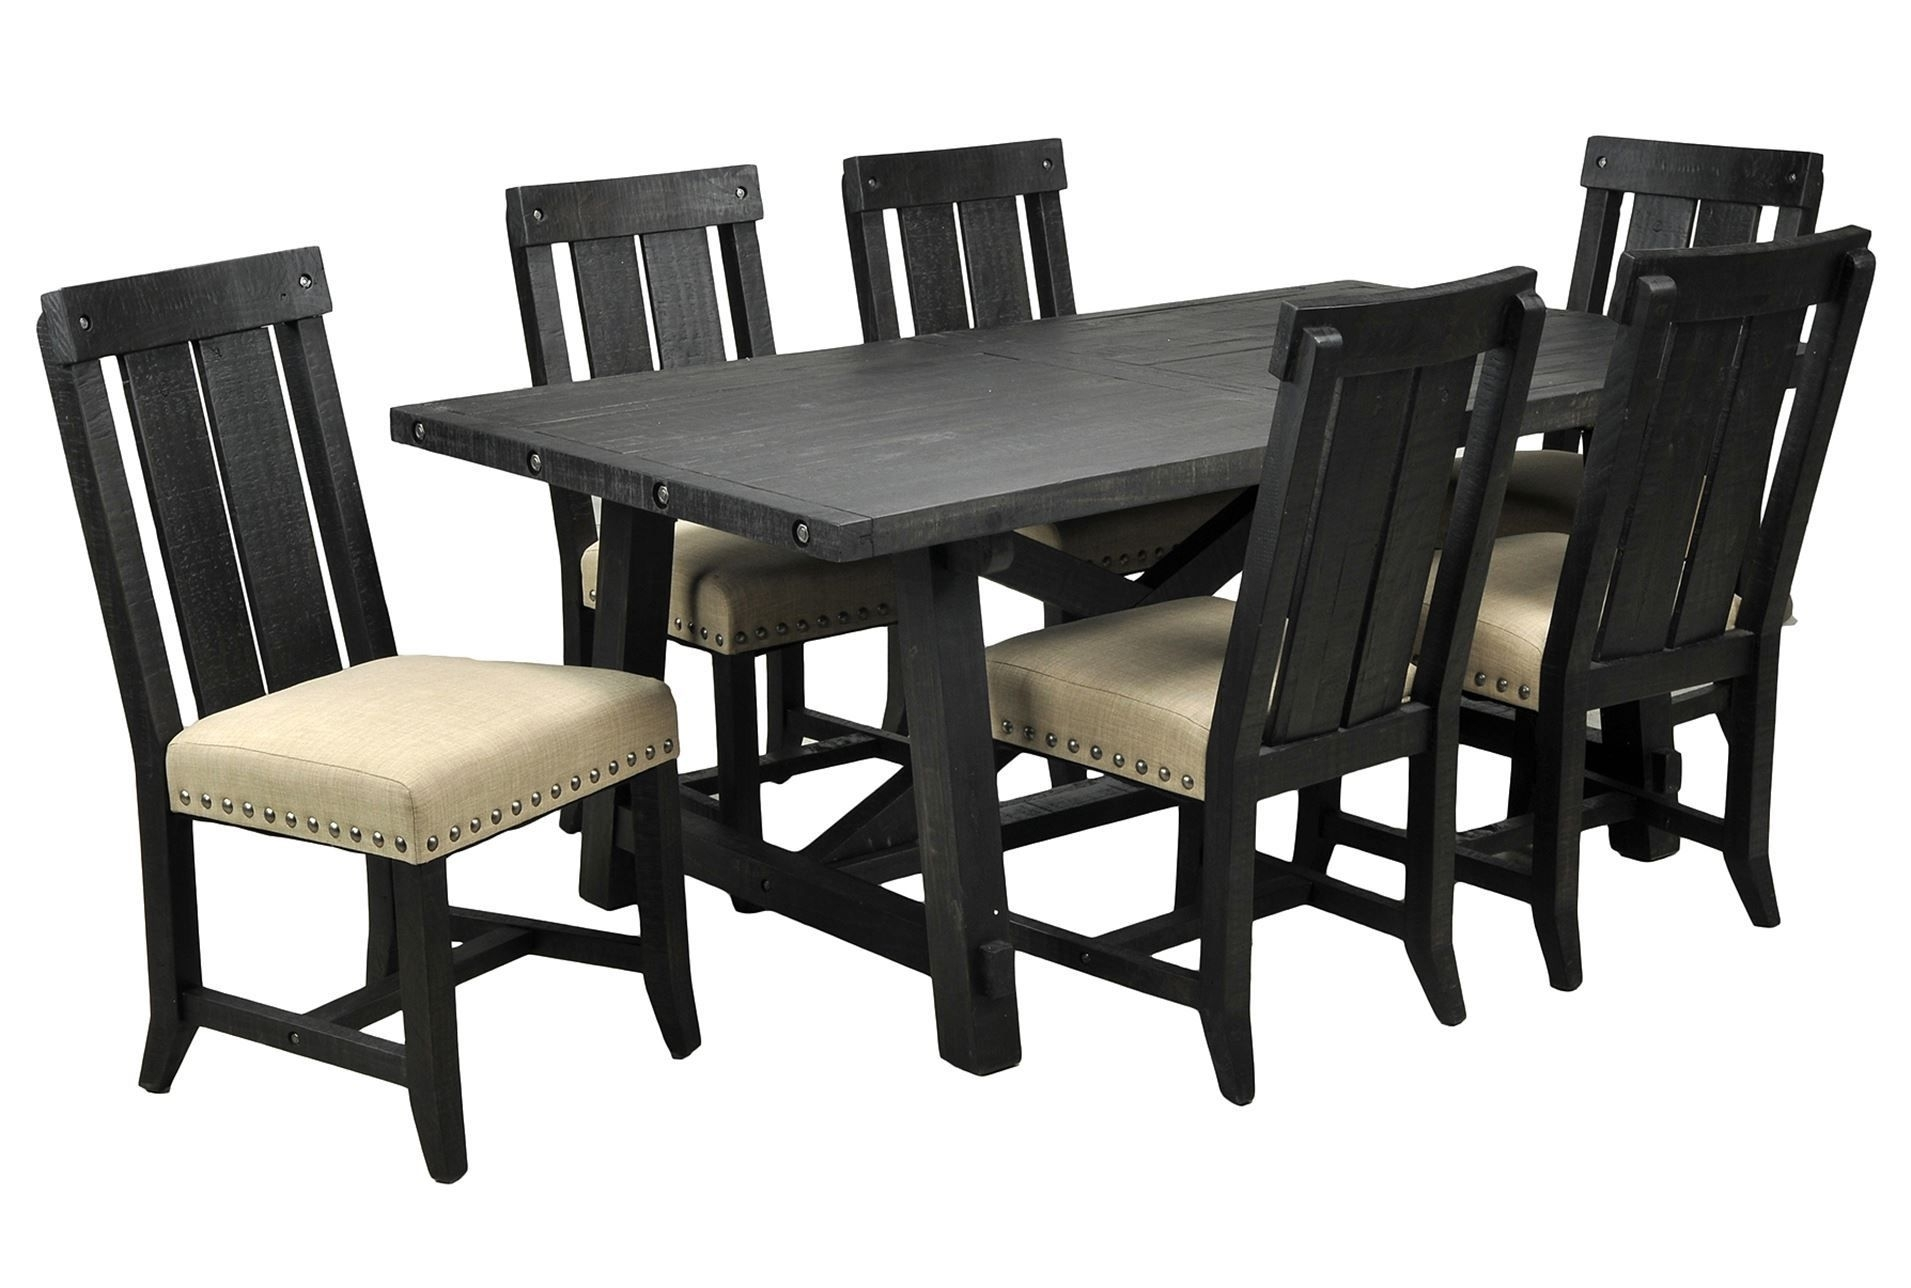 Jaxon 7 Piece Rectangle Dining Set W/wood Chairs | For The House I Regarding Most Up To Date Craftsman 9 Piece Extension Dining Sets With Uph Side Chairs (Image 10 of 20)